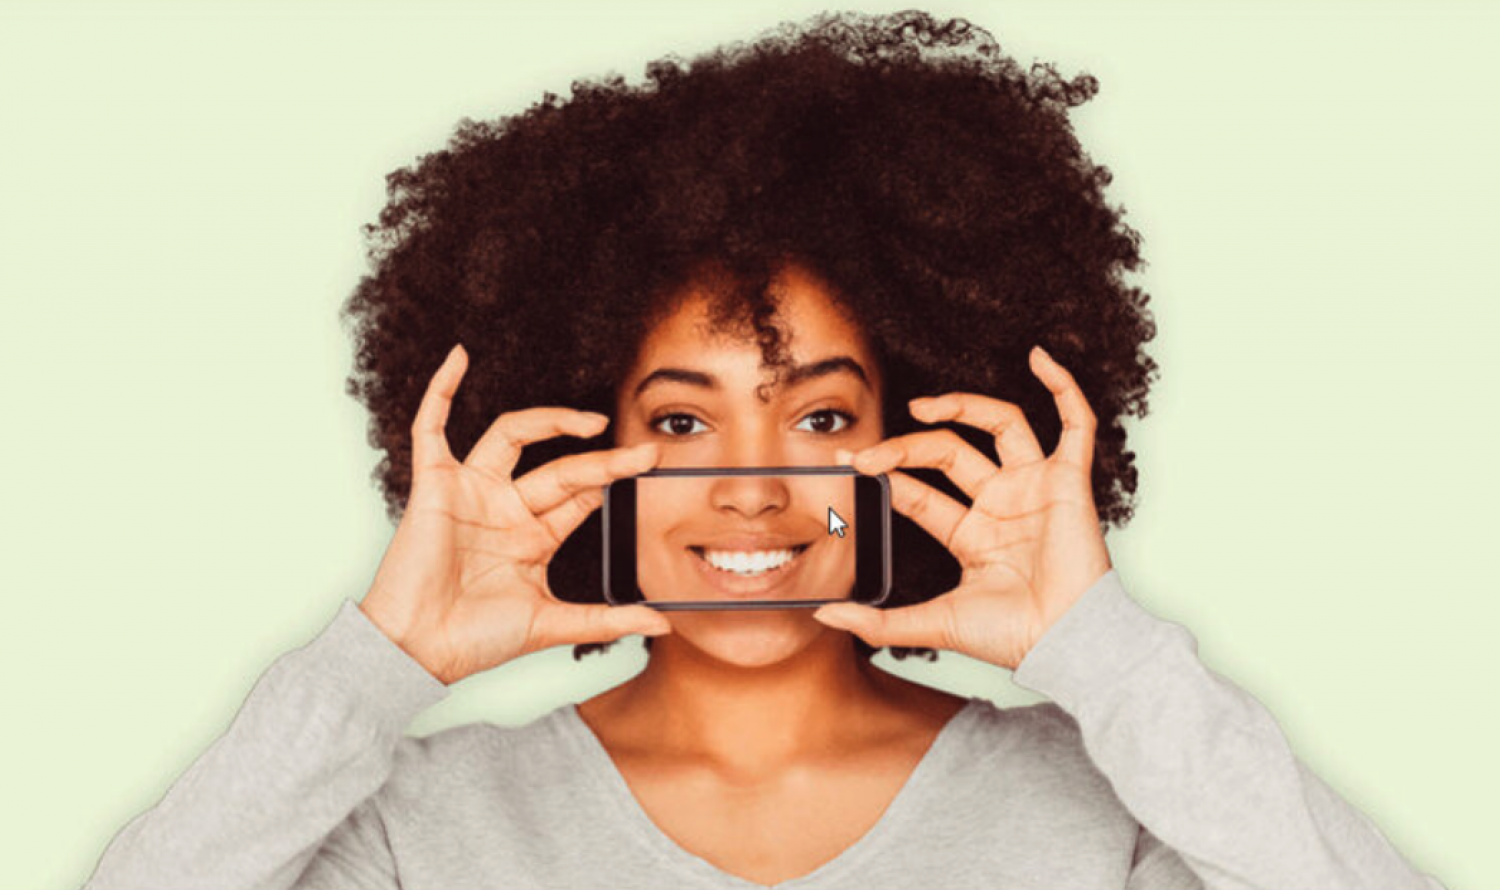 How to take smile photos for a virtual consultation